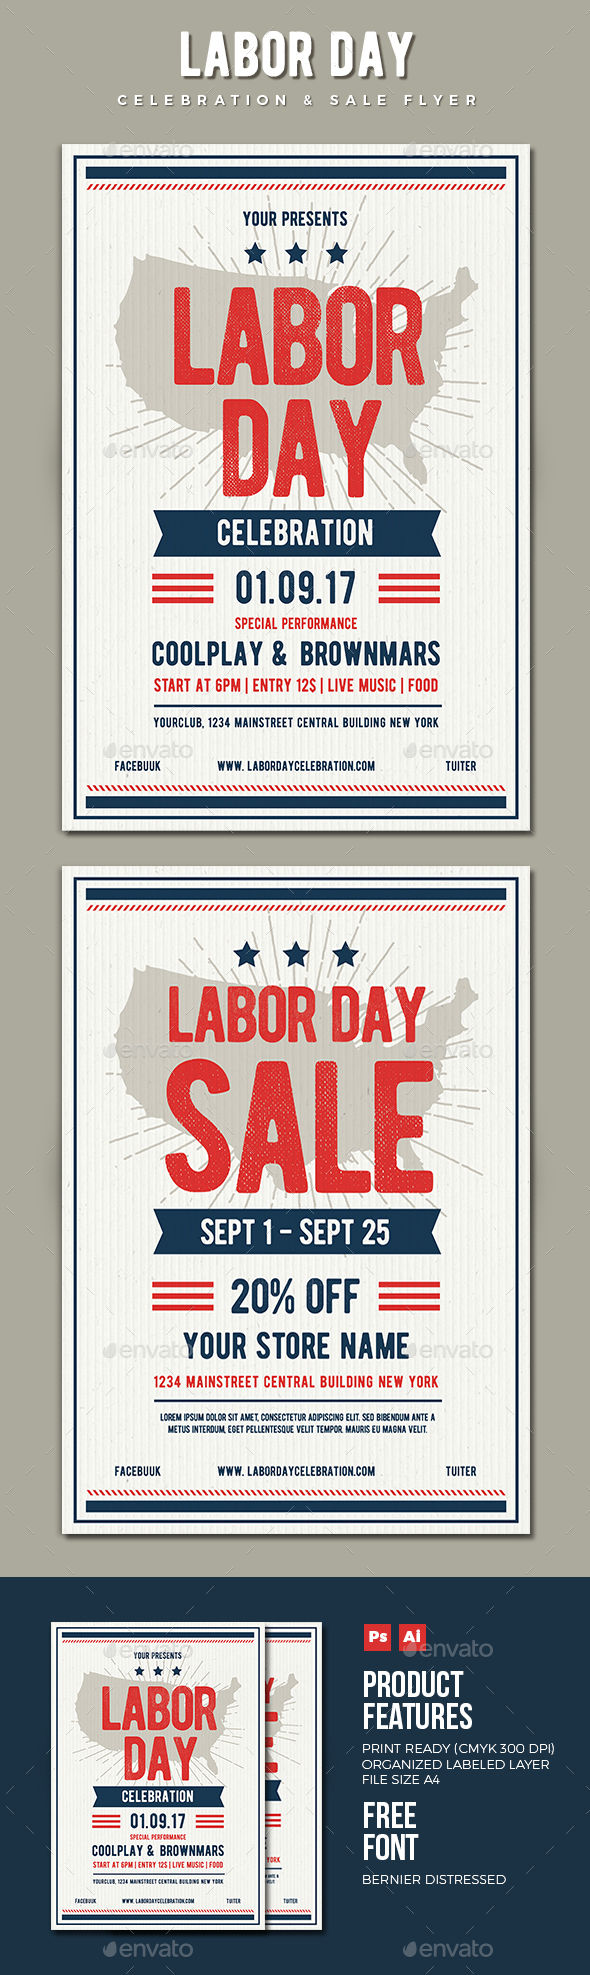 Labor Day Flyer by Vynetta (Labor Day party flyer)